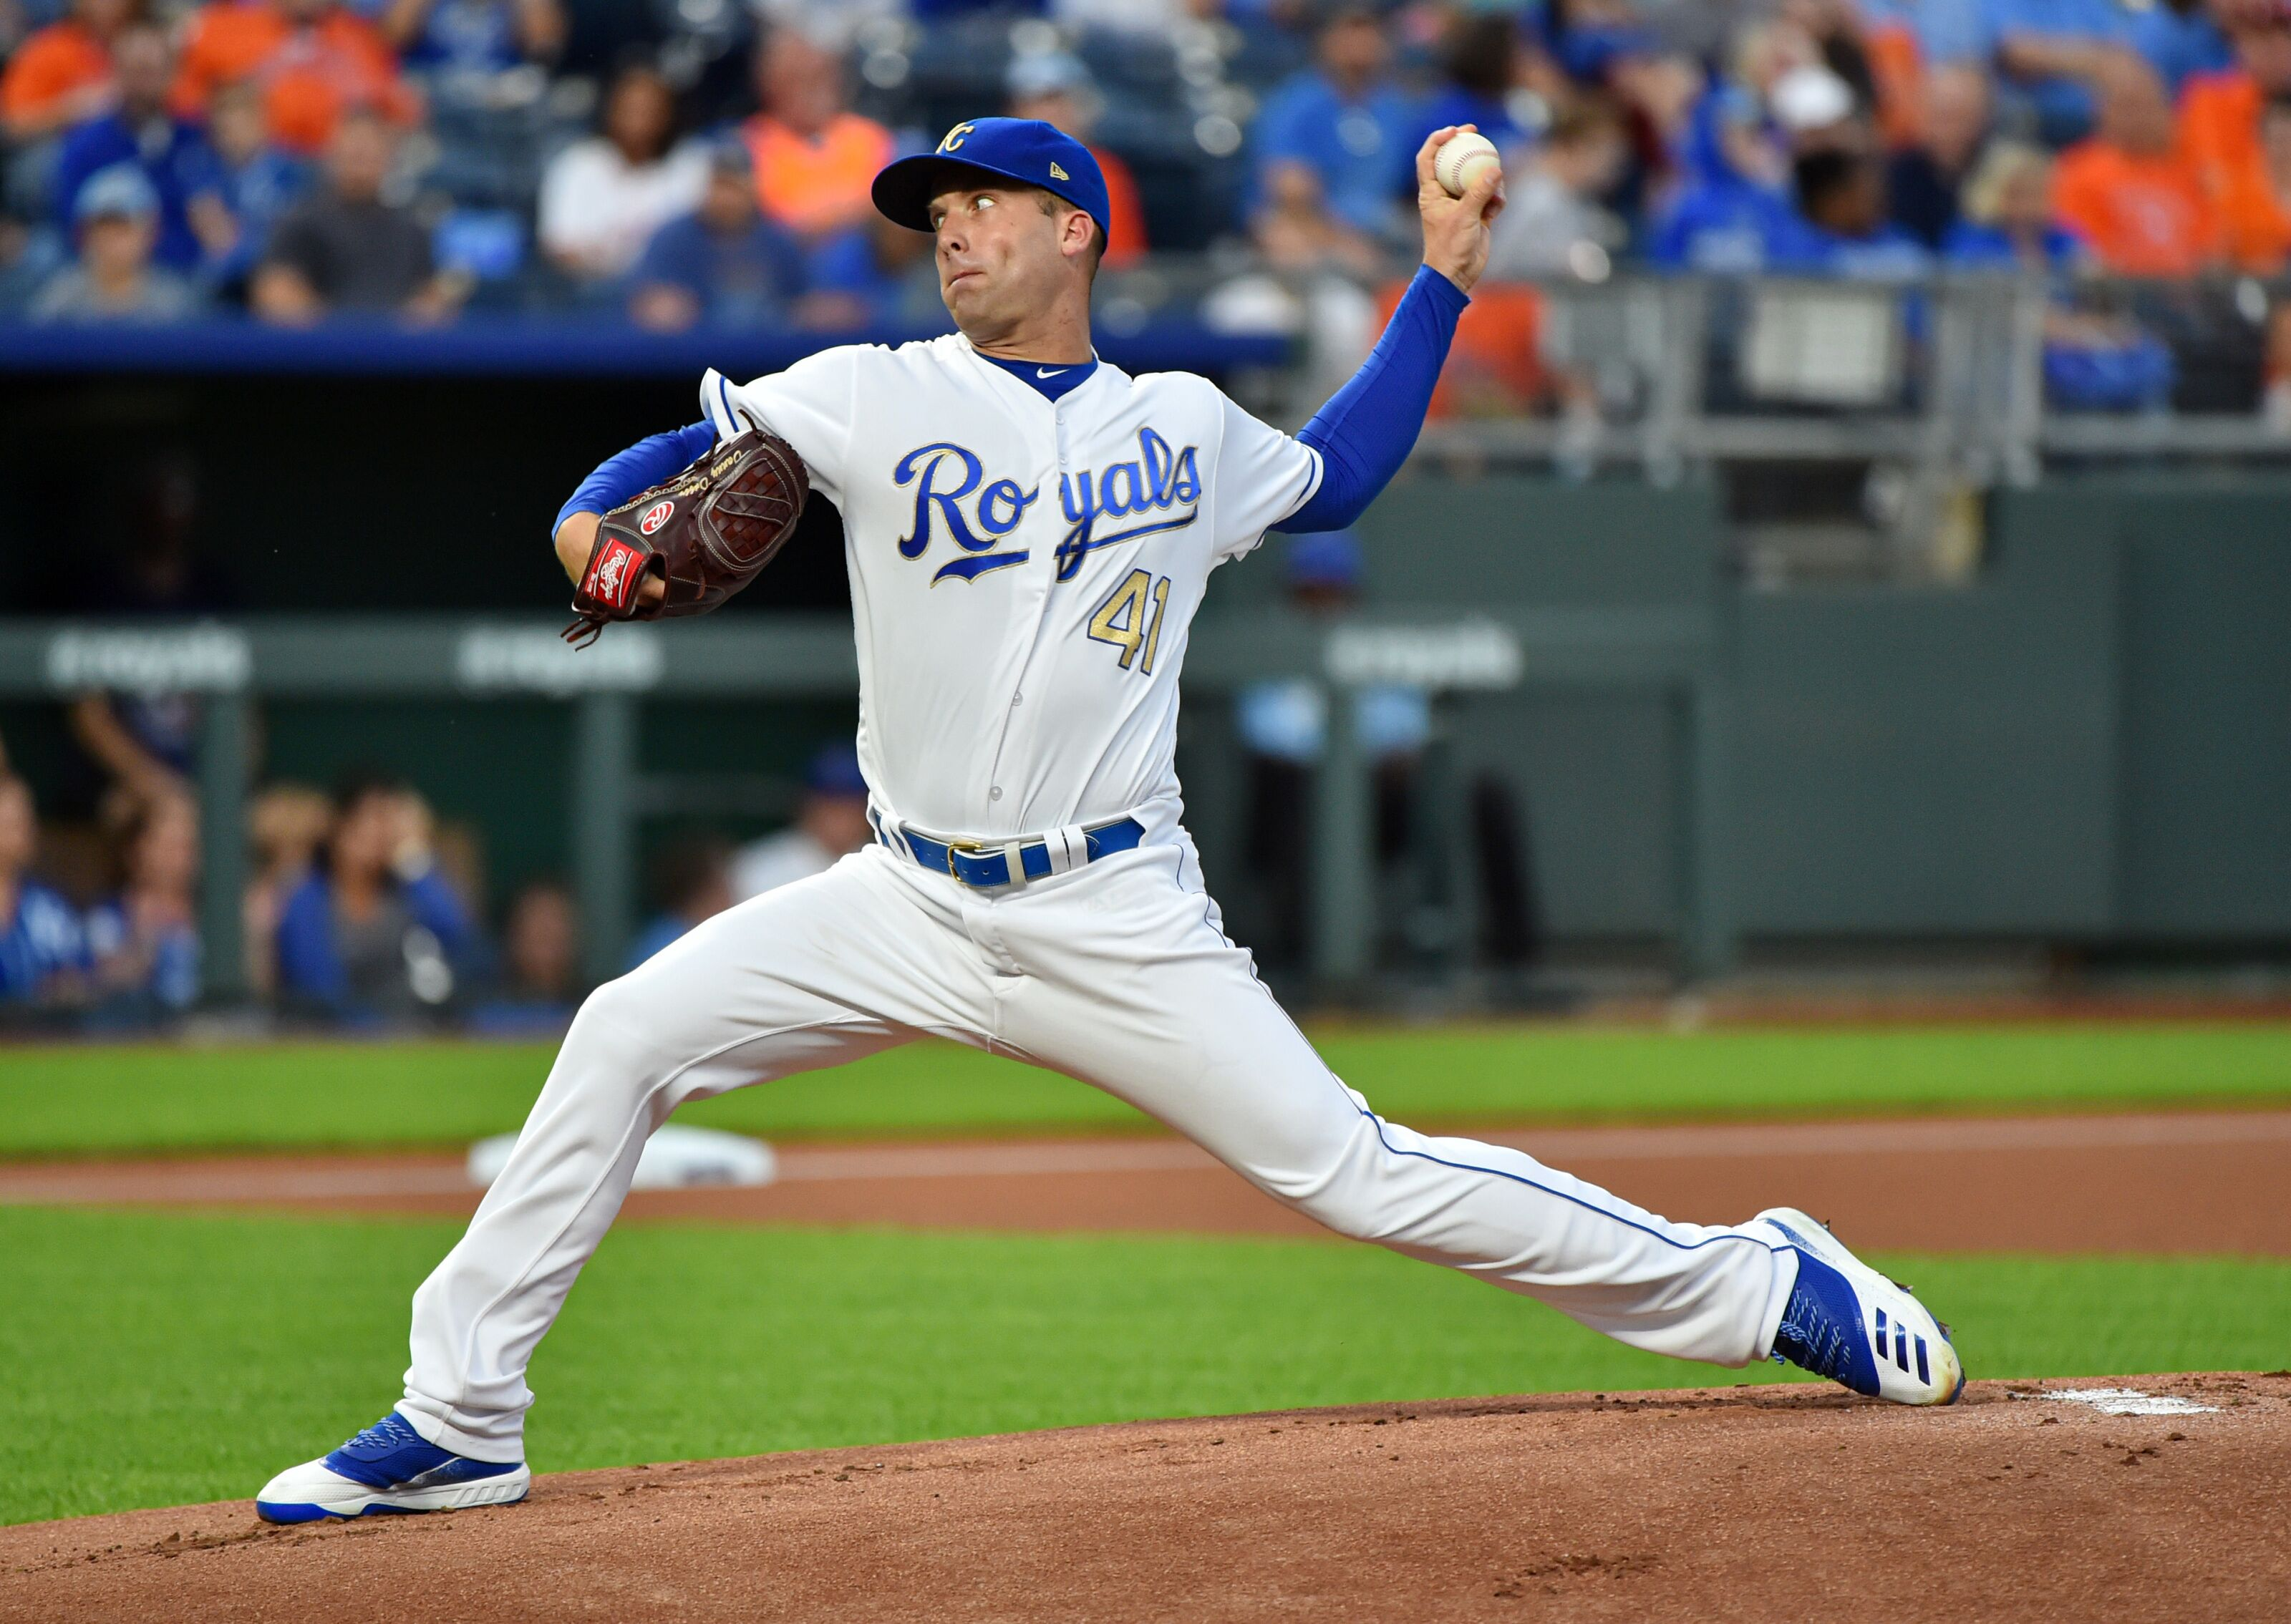 Kansas City Royals: Astros series proves team has long way to go